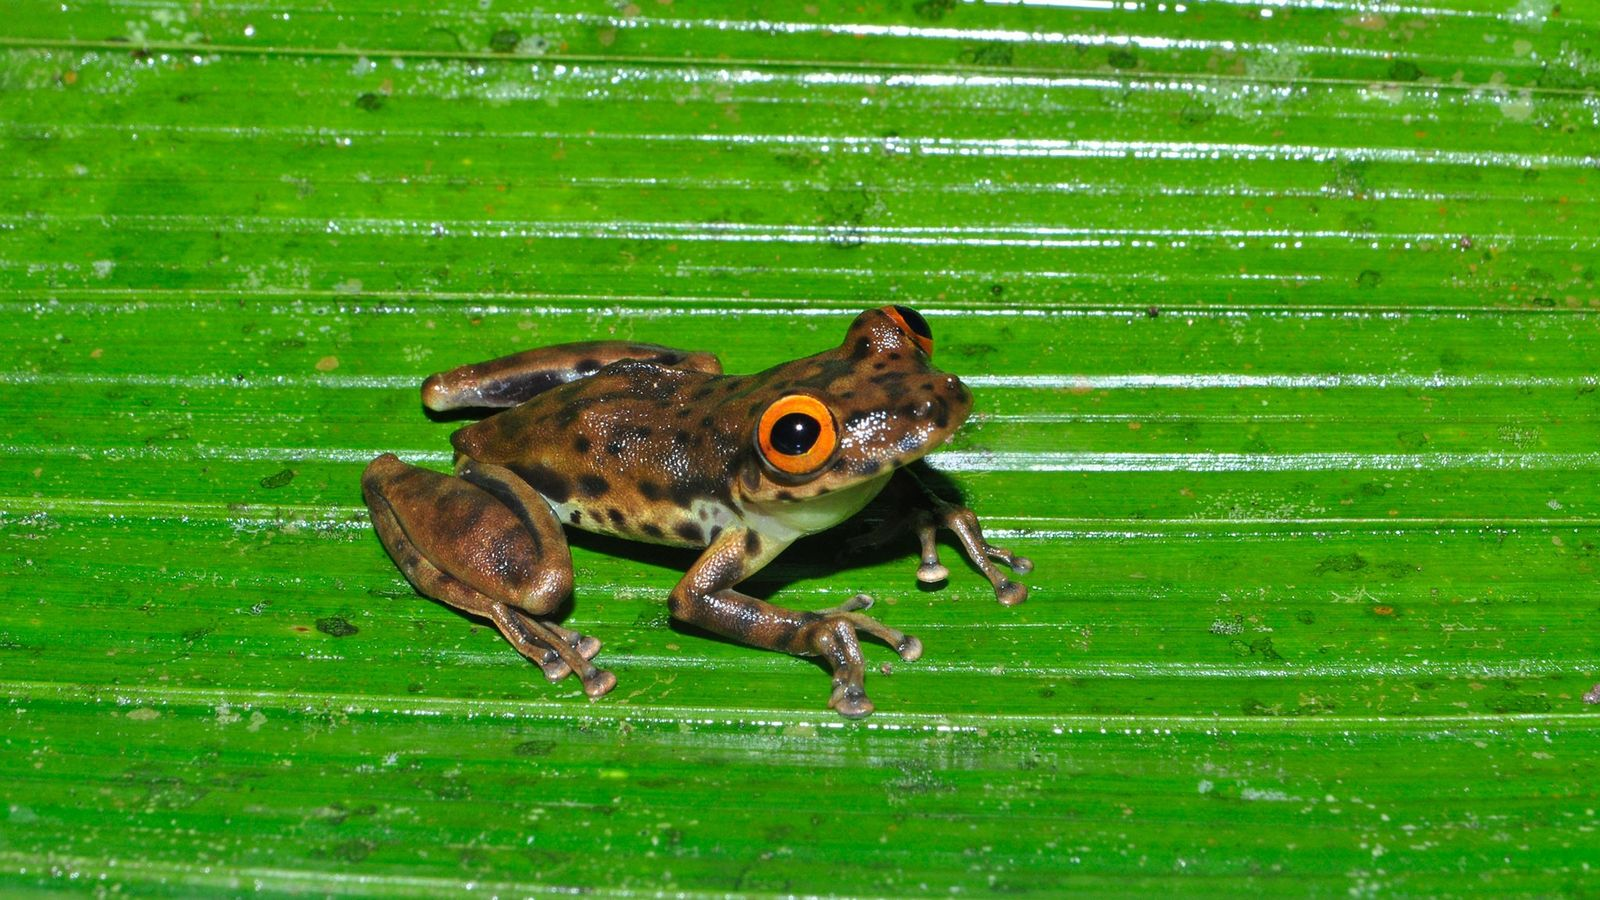 Researchers discovered the jaguar-snouted tree frog on a former motorway in Brazil.